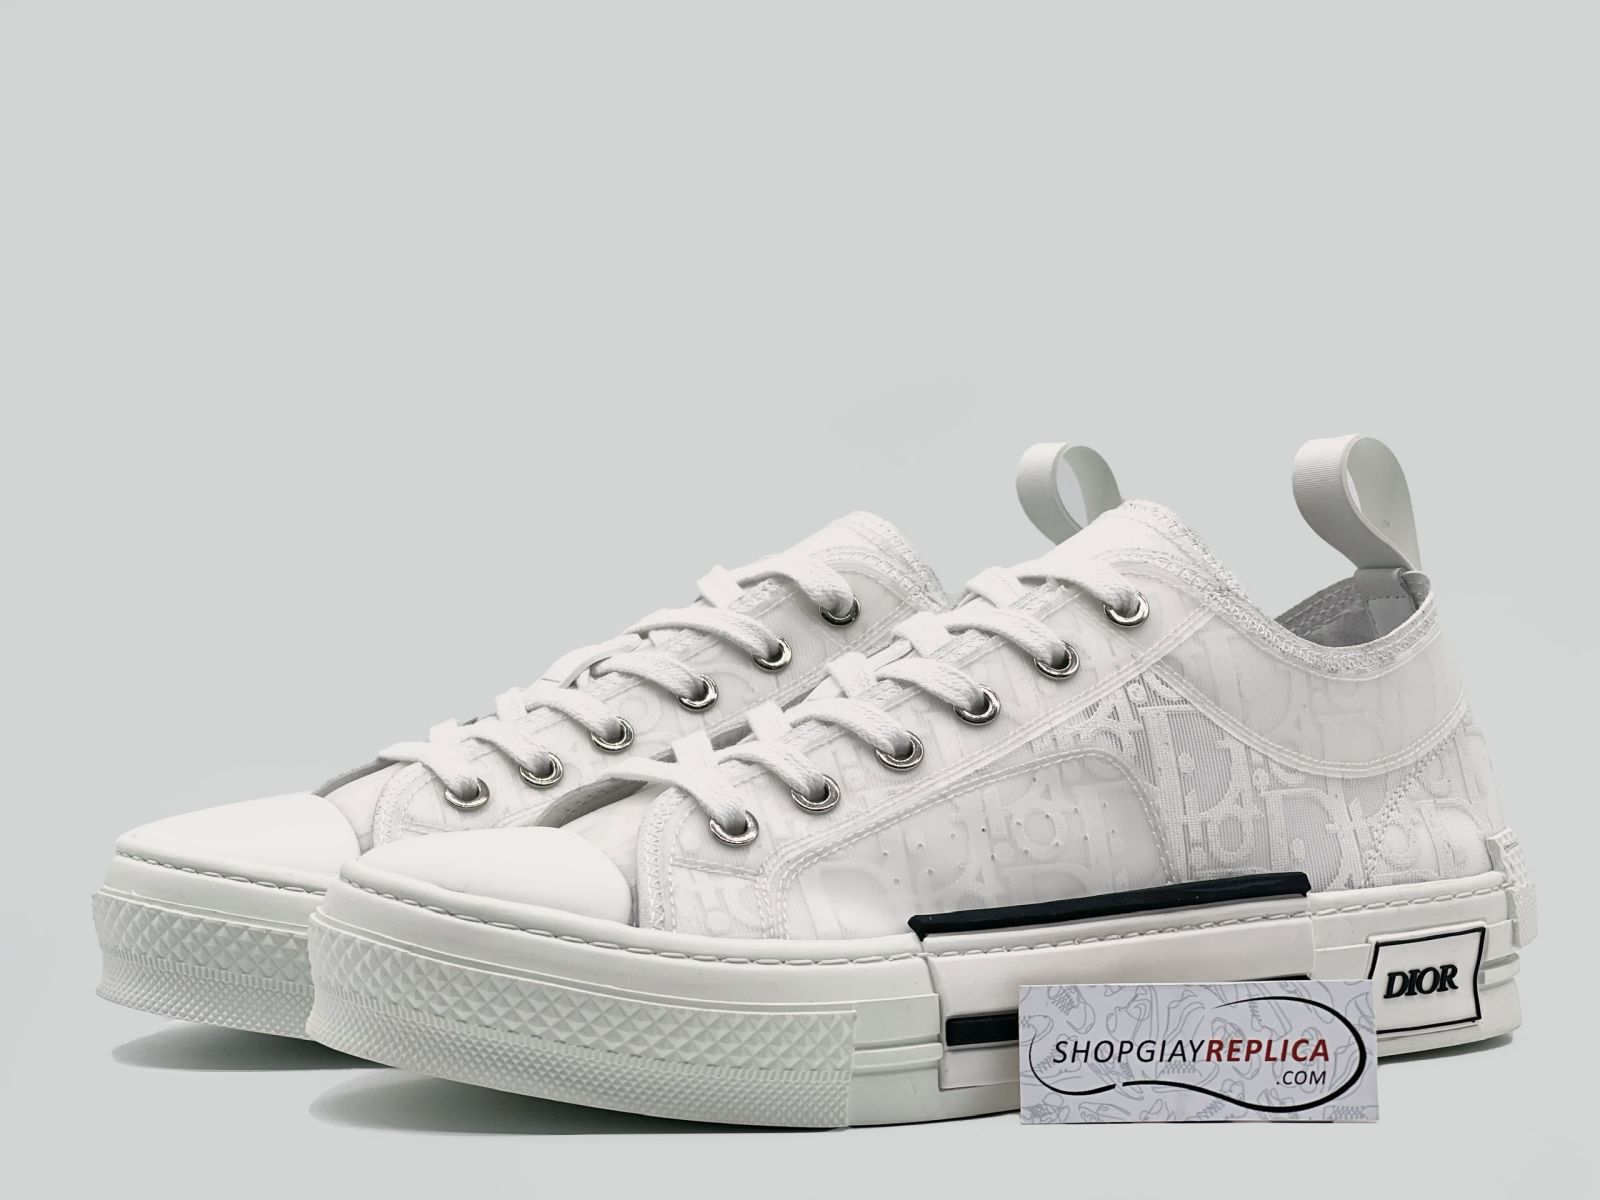 Giày Dior B23 Low Top White Dior Oblique Like Auth